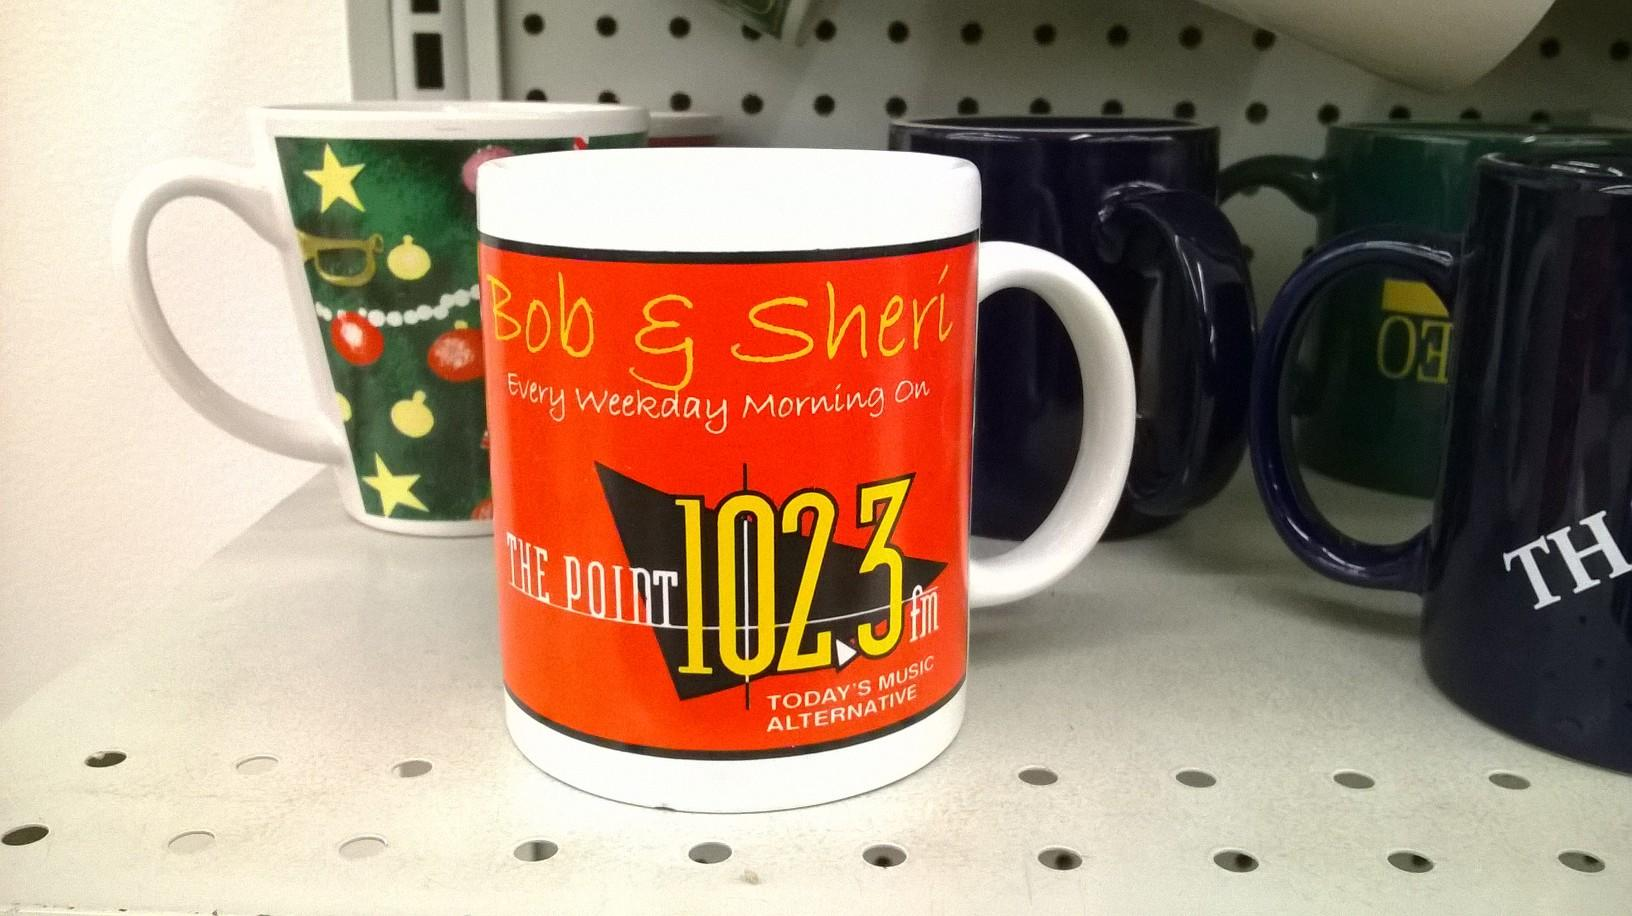 Bob and Sheri coffee mug